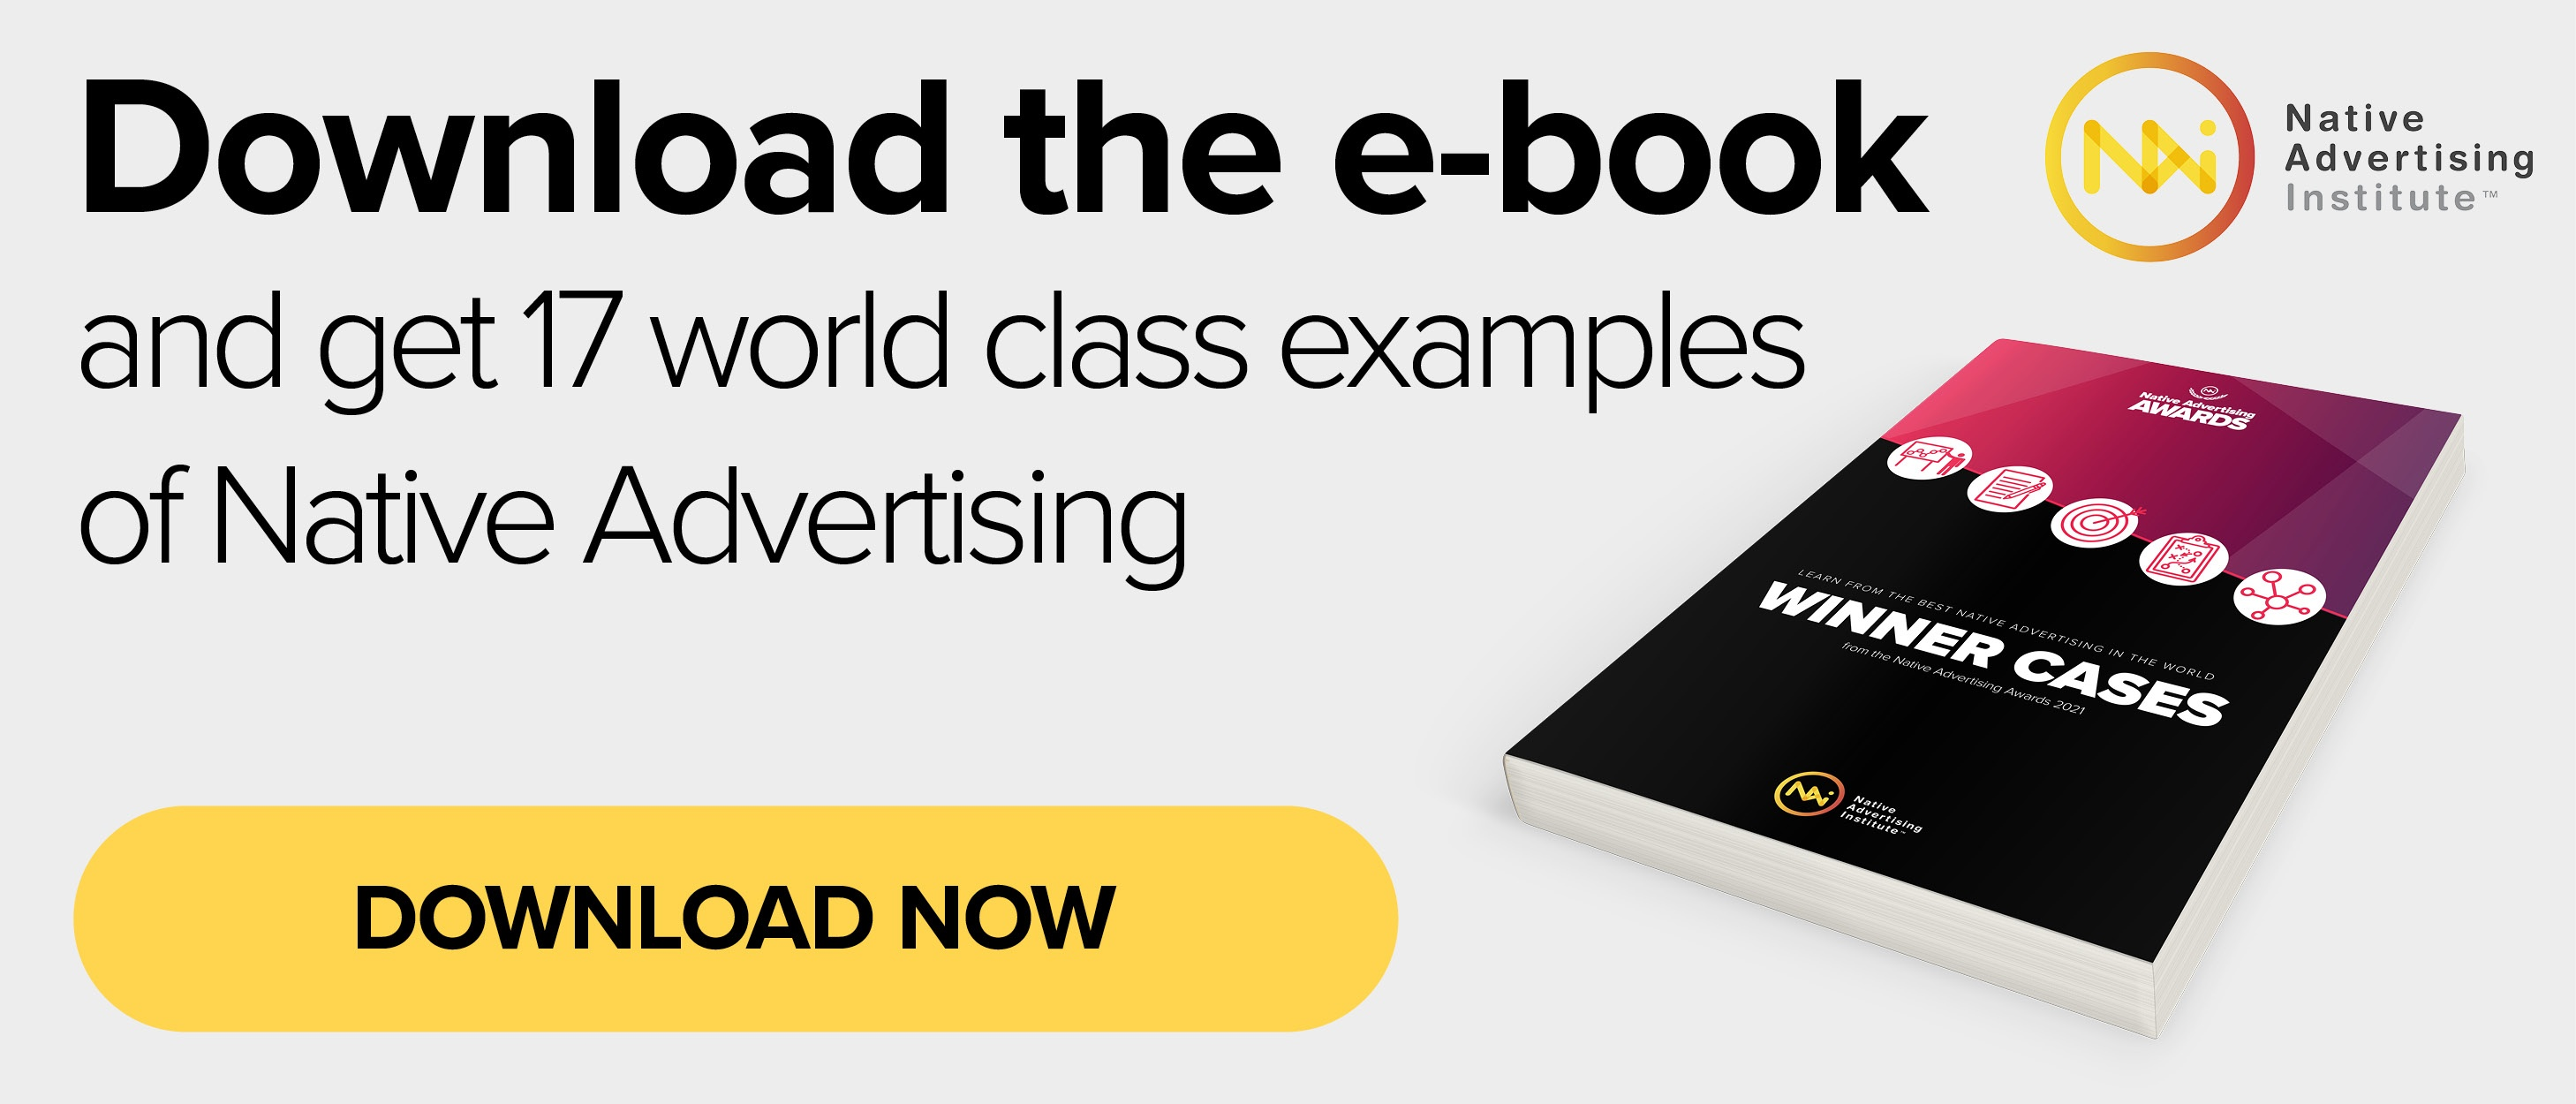 Download the e-book and get world class examples of Native Advertising